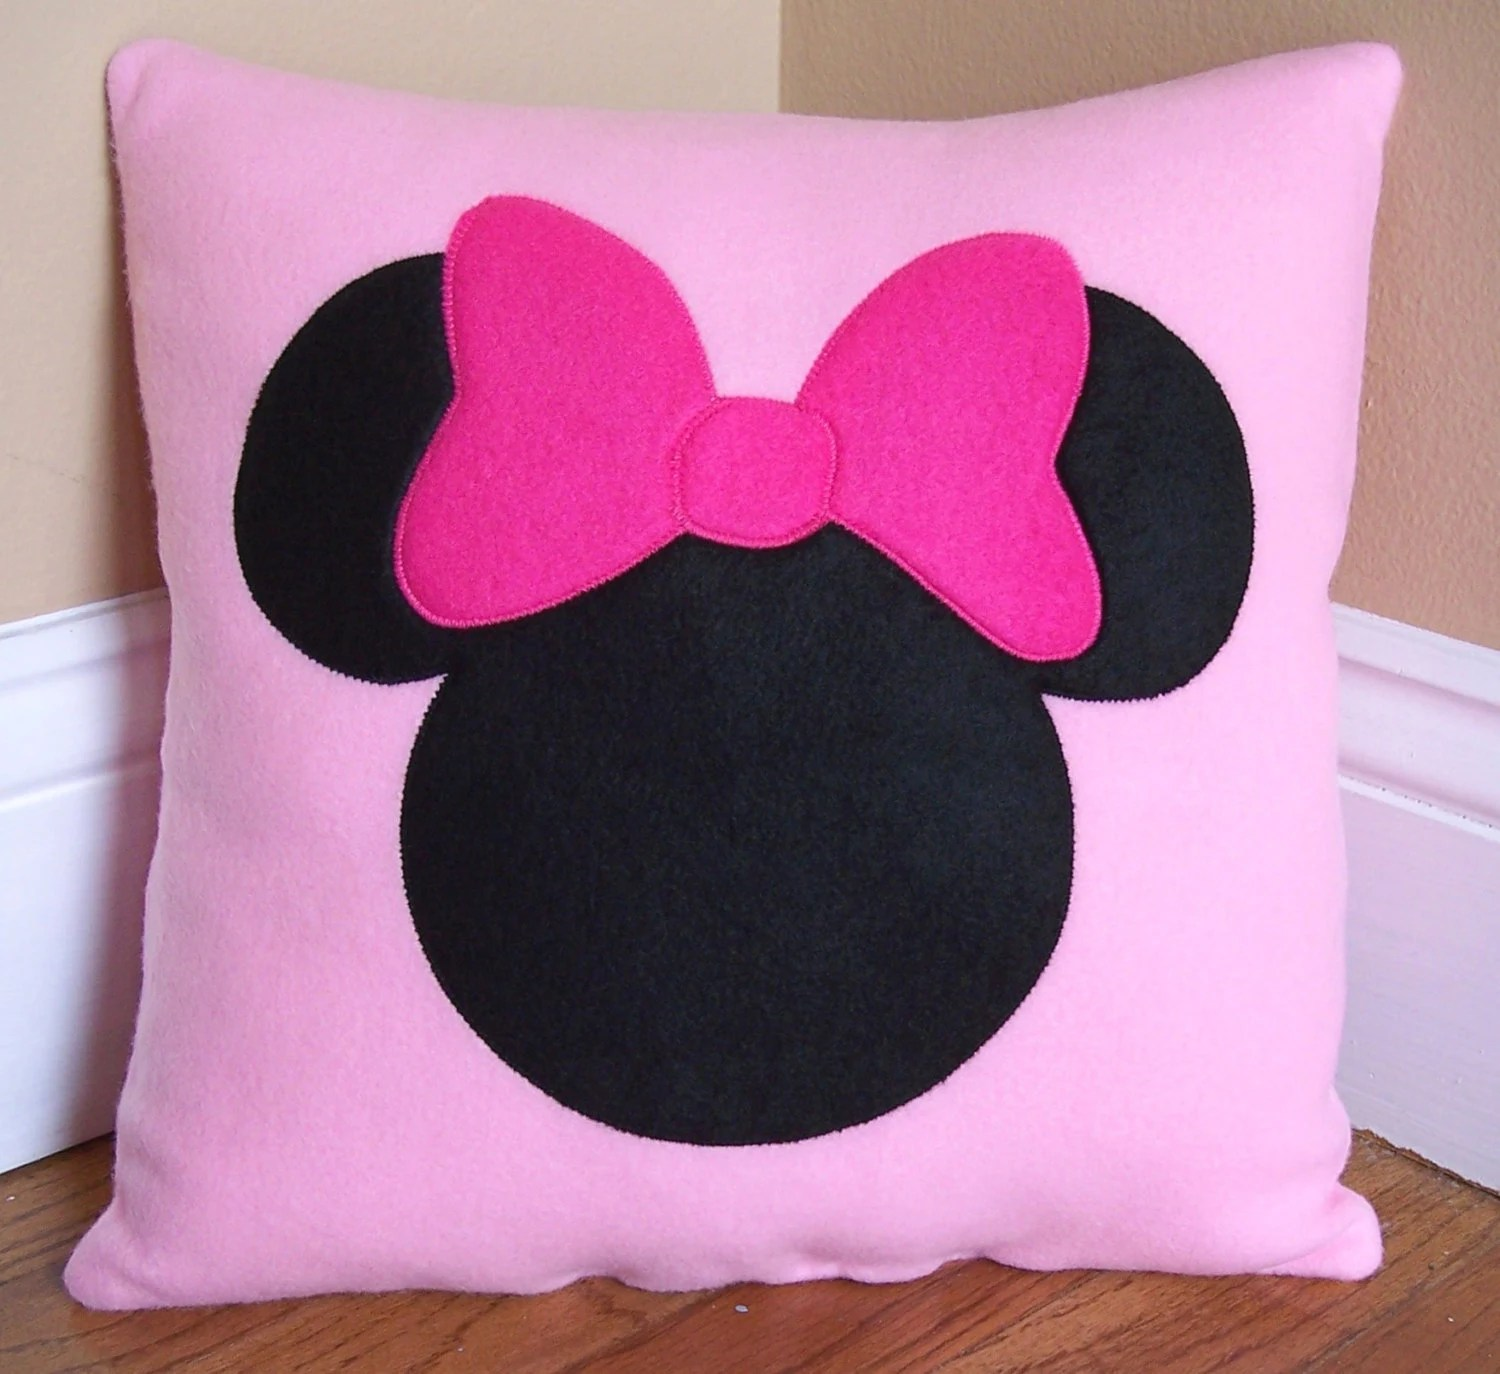 Cojines Con Fotos Personalizadas Minnie Mouse Pillow